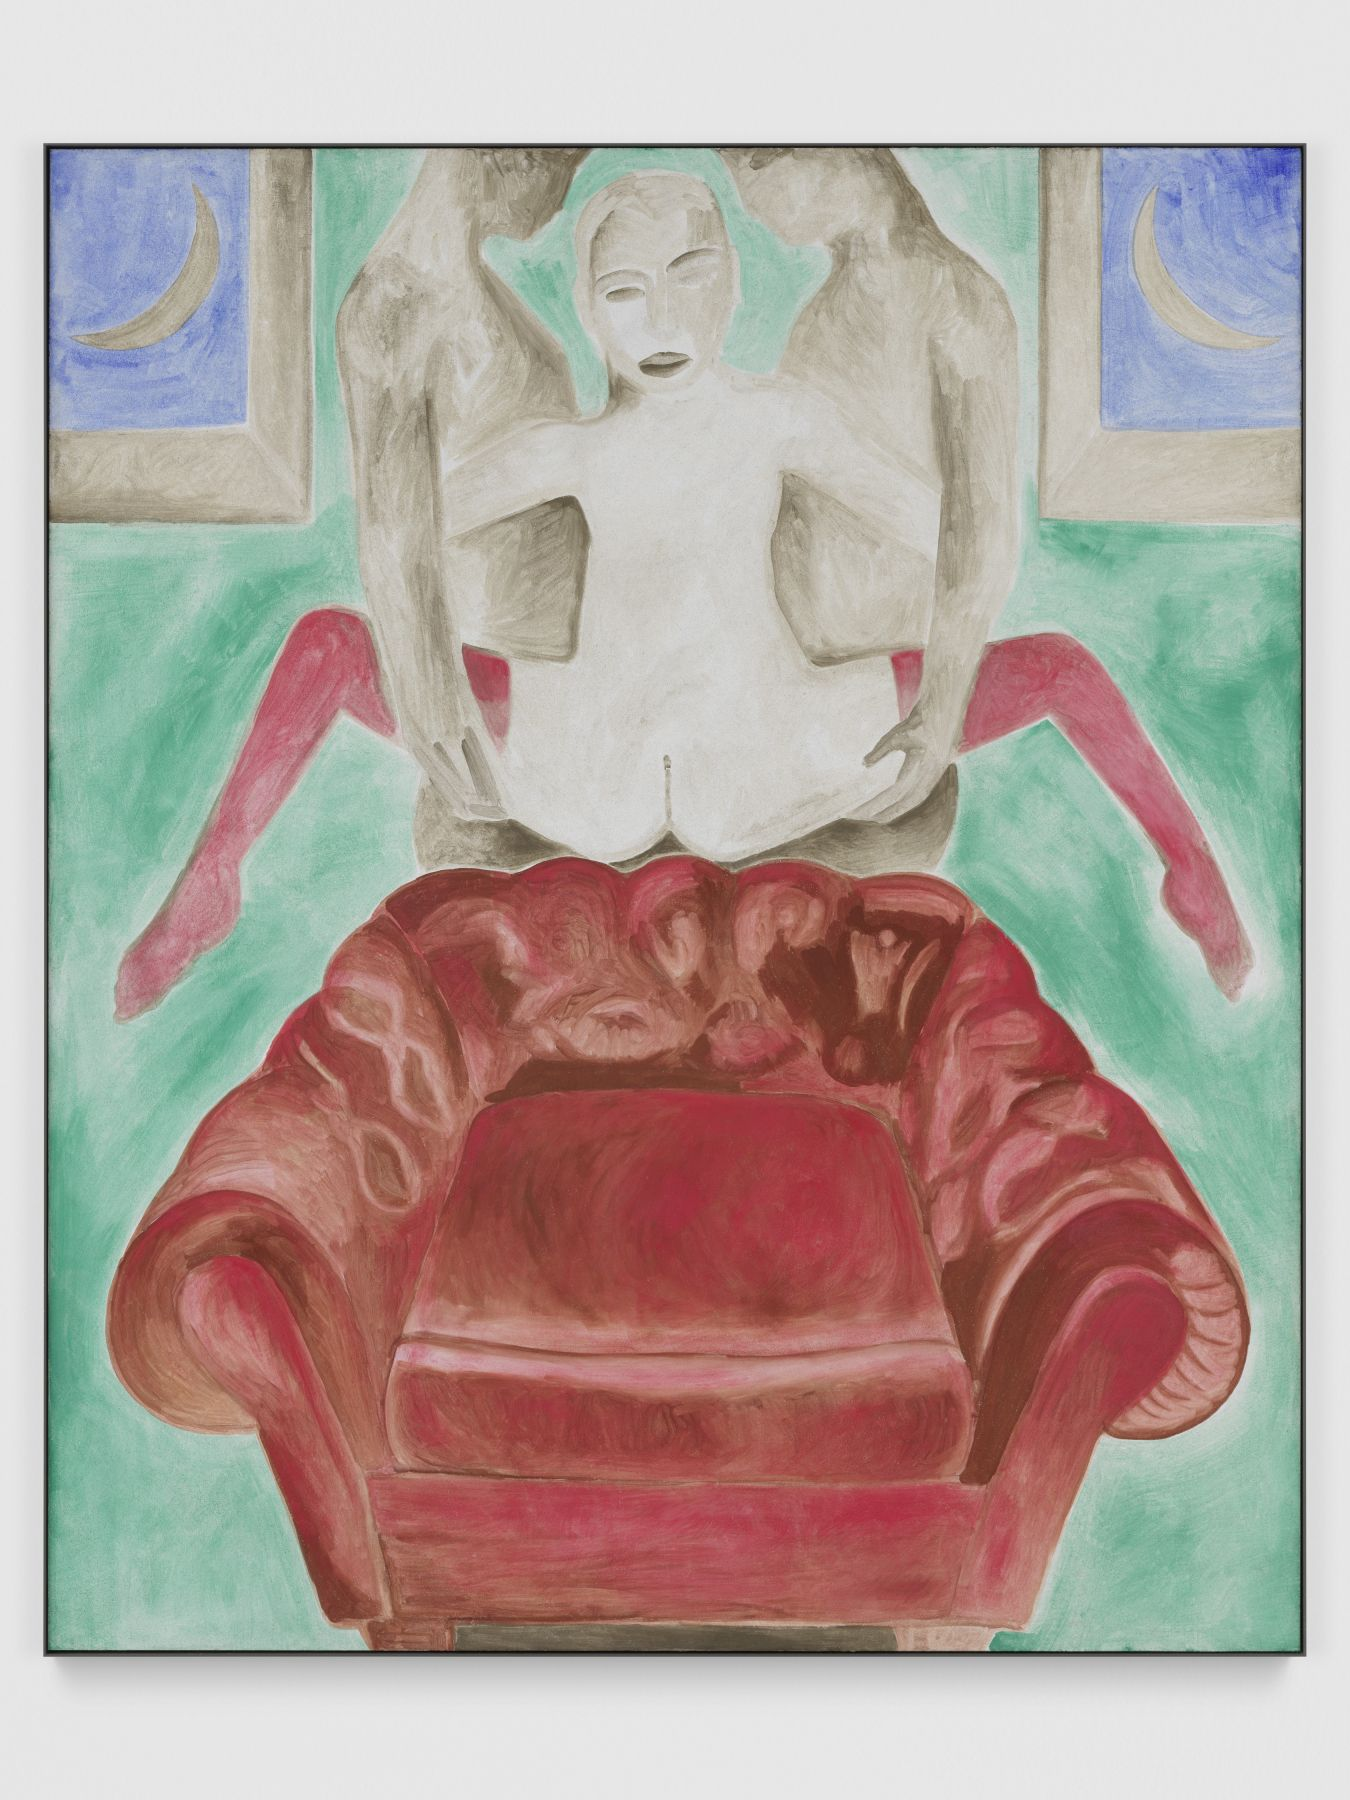 Francesco Clemente, Aspects of the Moon VII